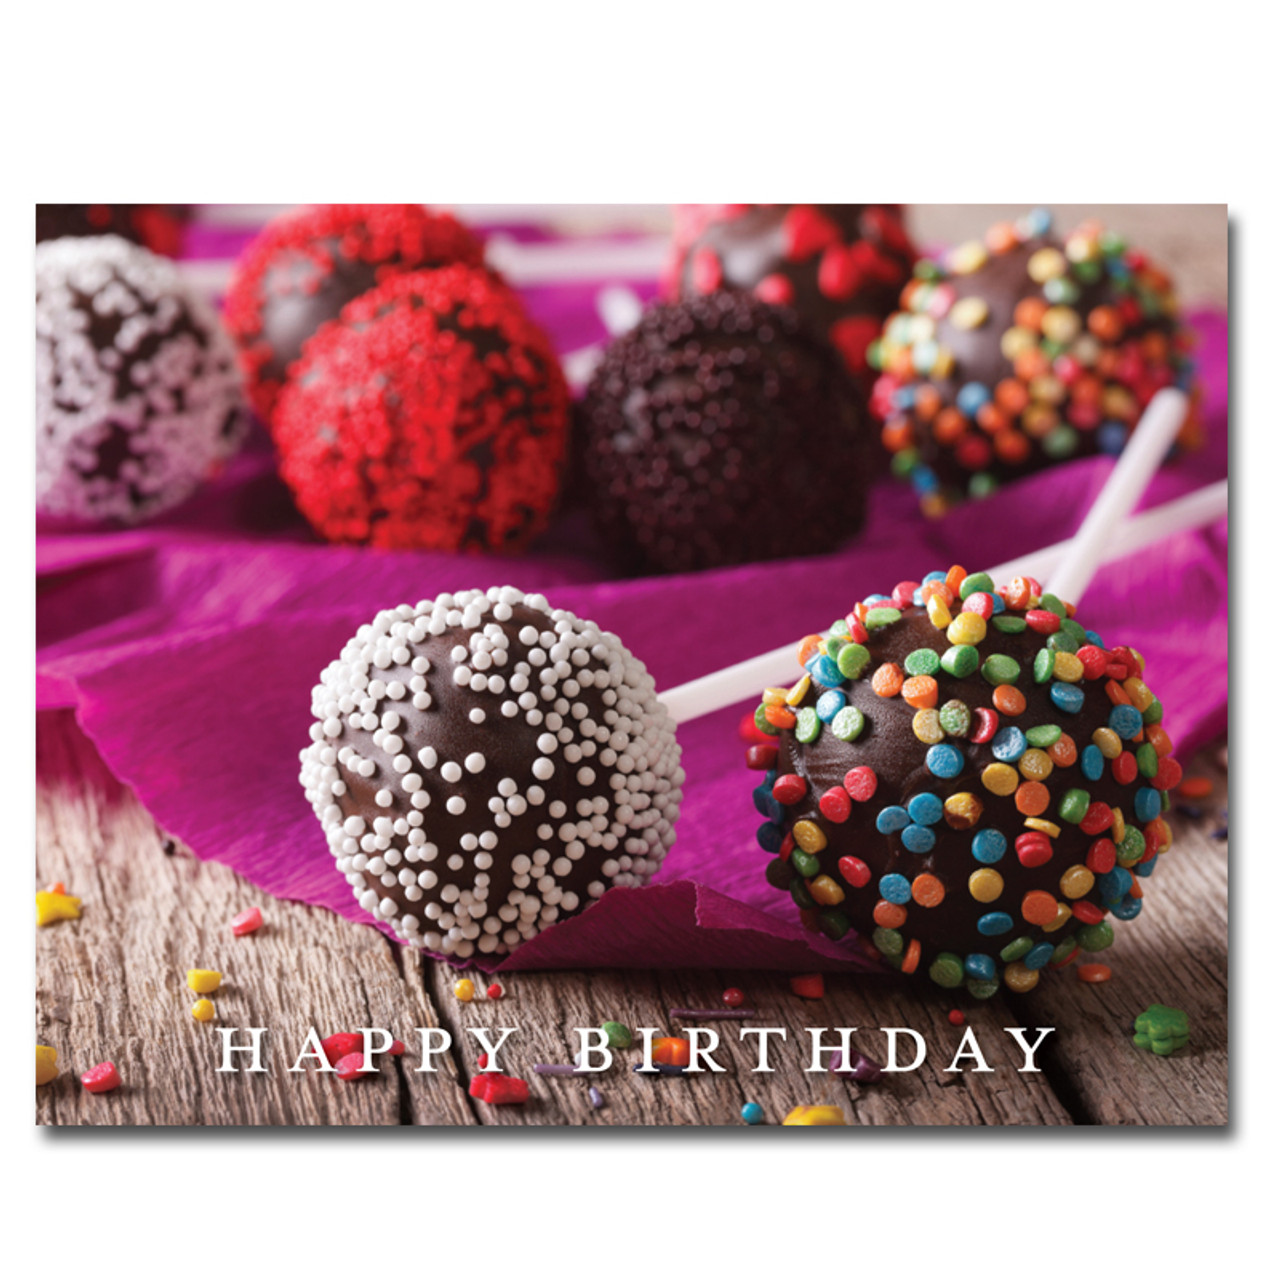 Cake Pops Birthday Postcard Has A Photo Of Decorated And The Words Happy